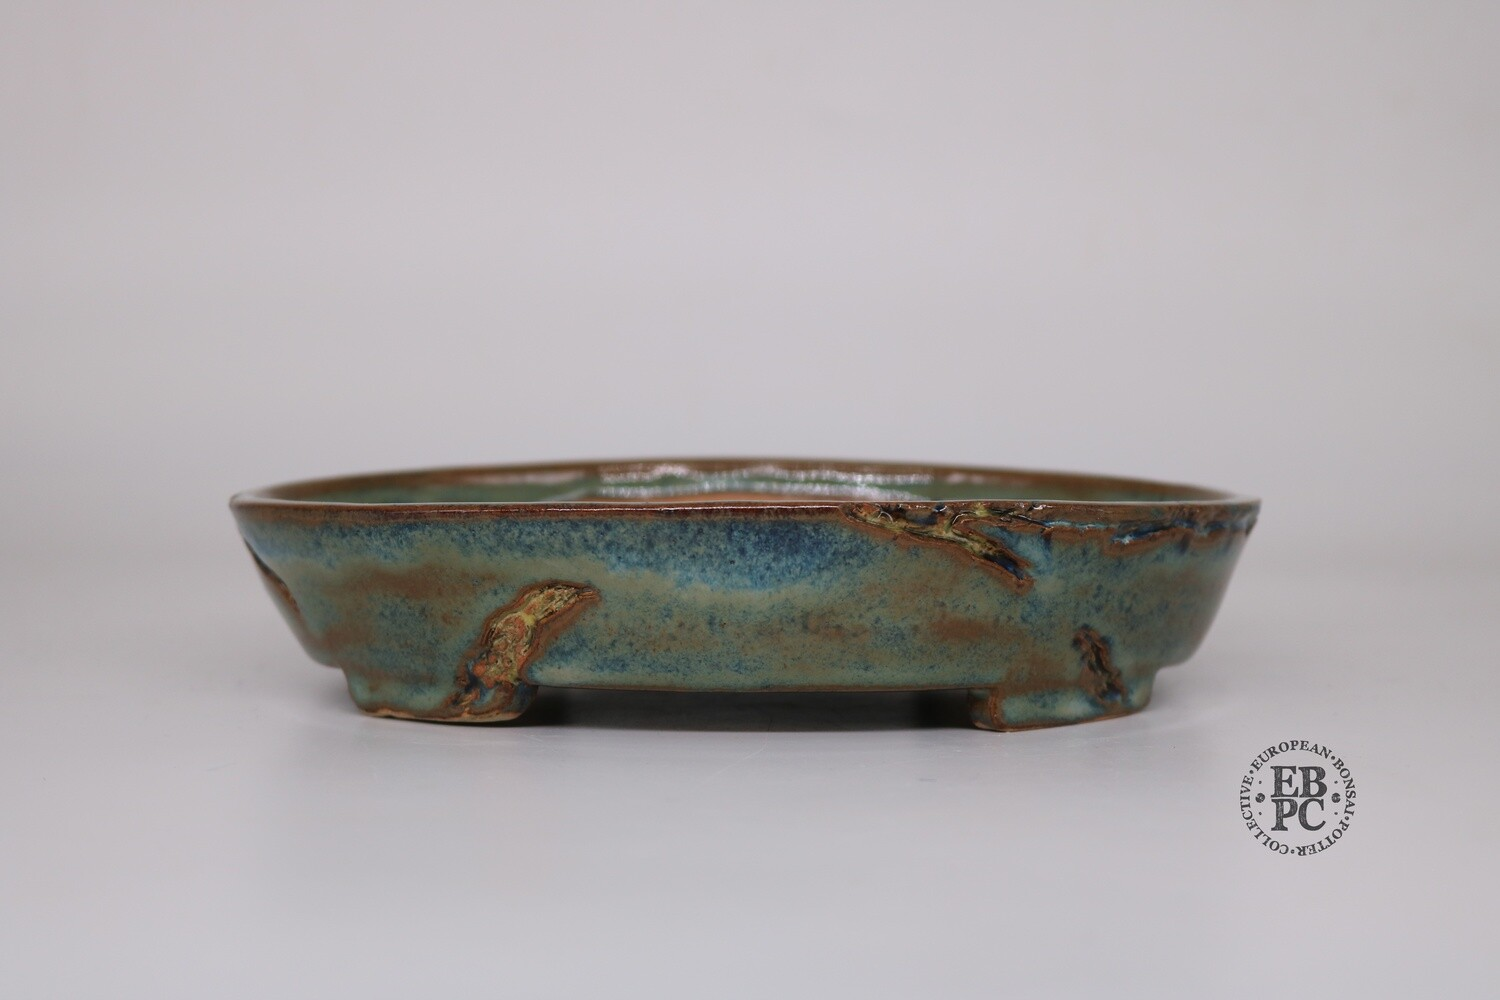 SOLD - Paul Rogers Ceramics - 20.3cm; Glazed; Oval; 'Mushikui' / Bug eaten Carved Detail; Blues; Greens; Browns; EBPC Stamped;